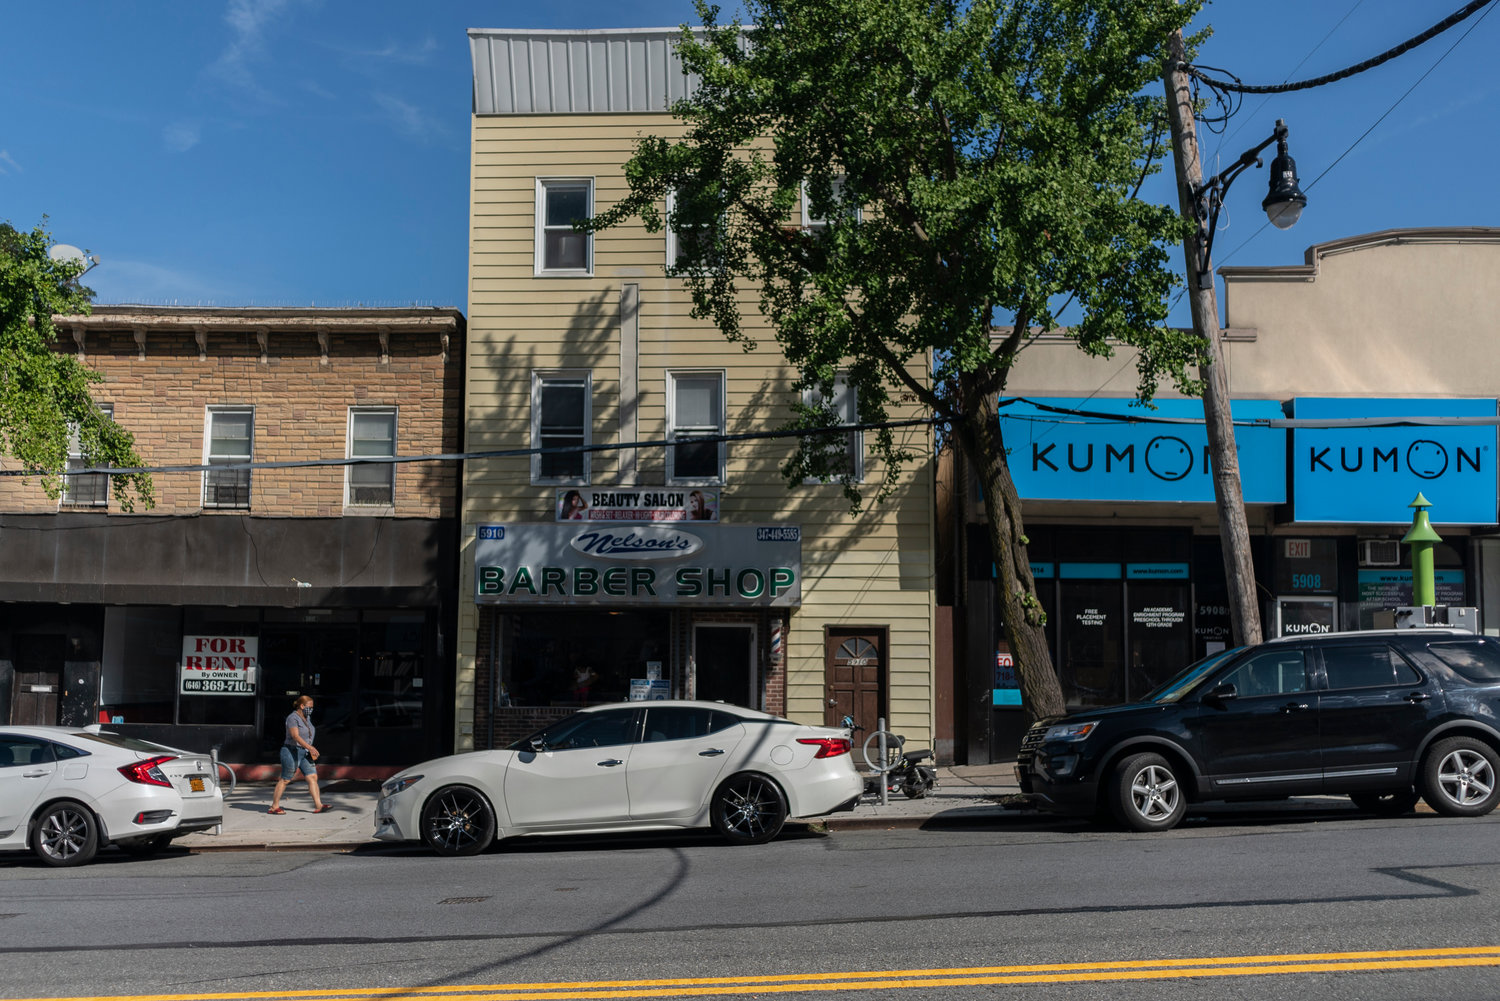 Two Kumon signs — but no Mathnasium signs — remain along Riverdale Avenue between West 259th and West 260th streets.